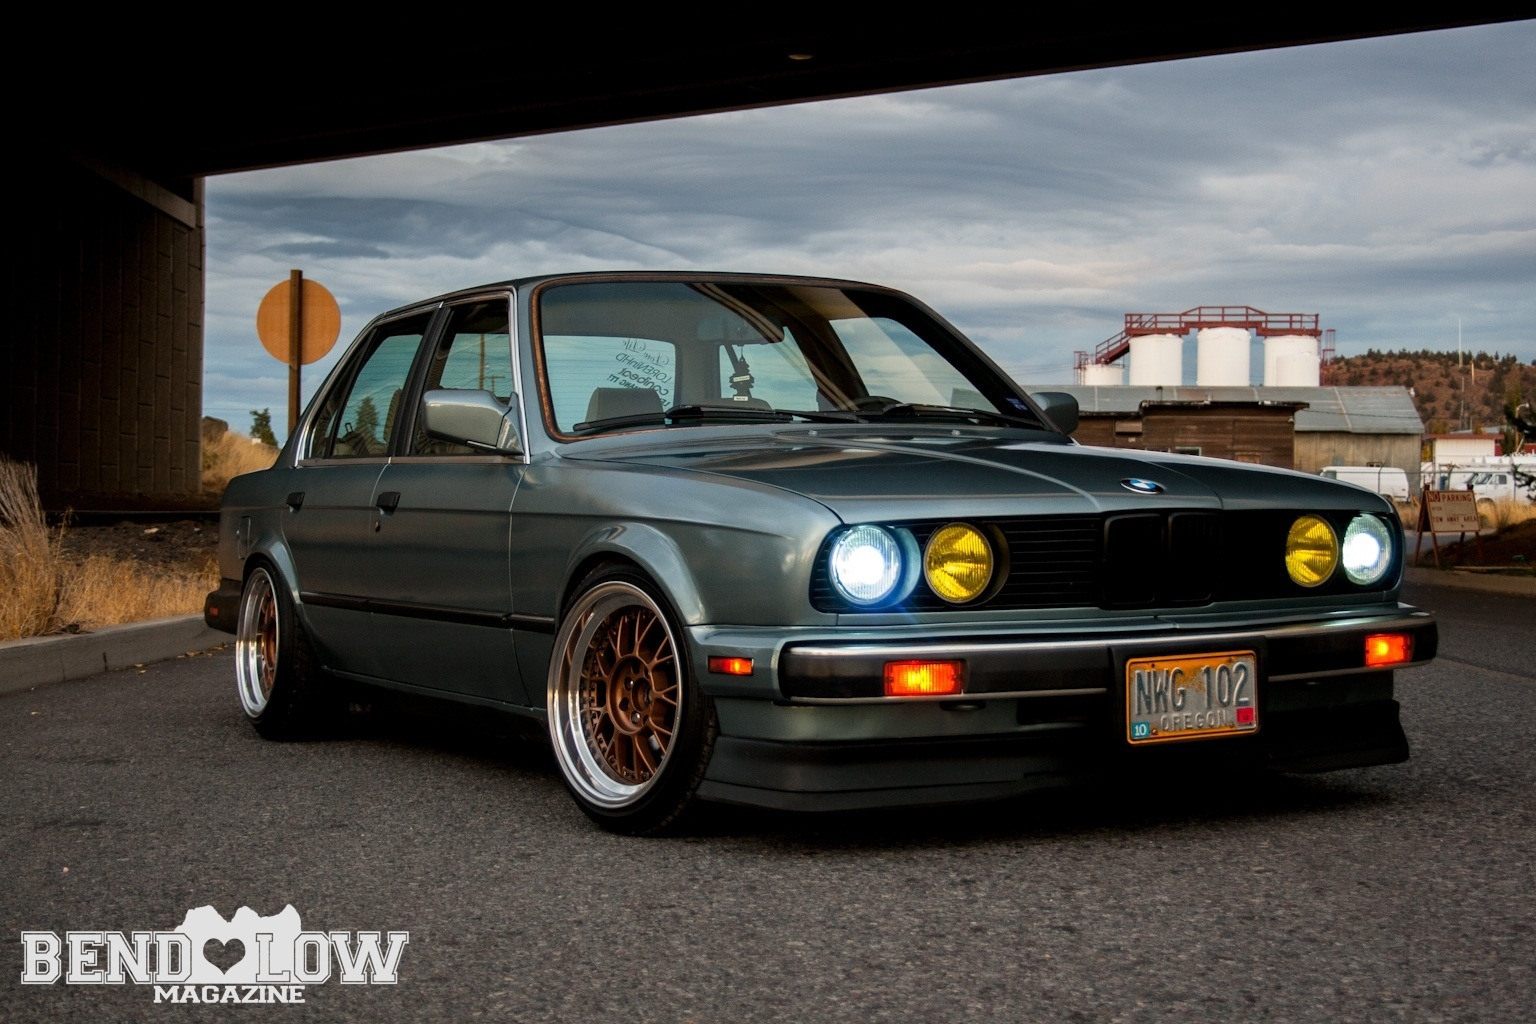 stanced bmw e30 bend low magazine. Black Bedroom Furniture Sets. Home Design Ideas